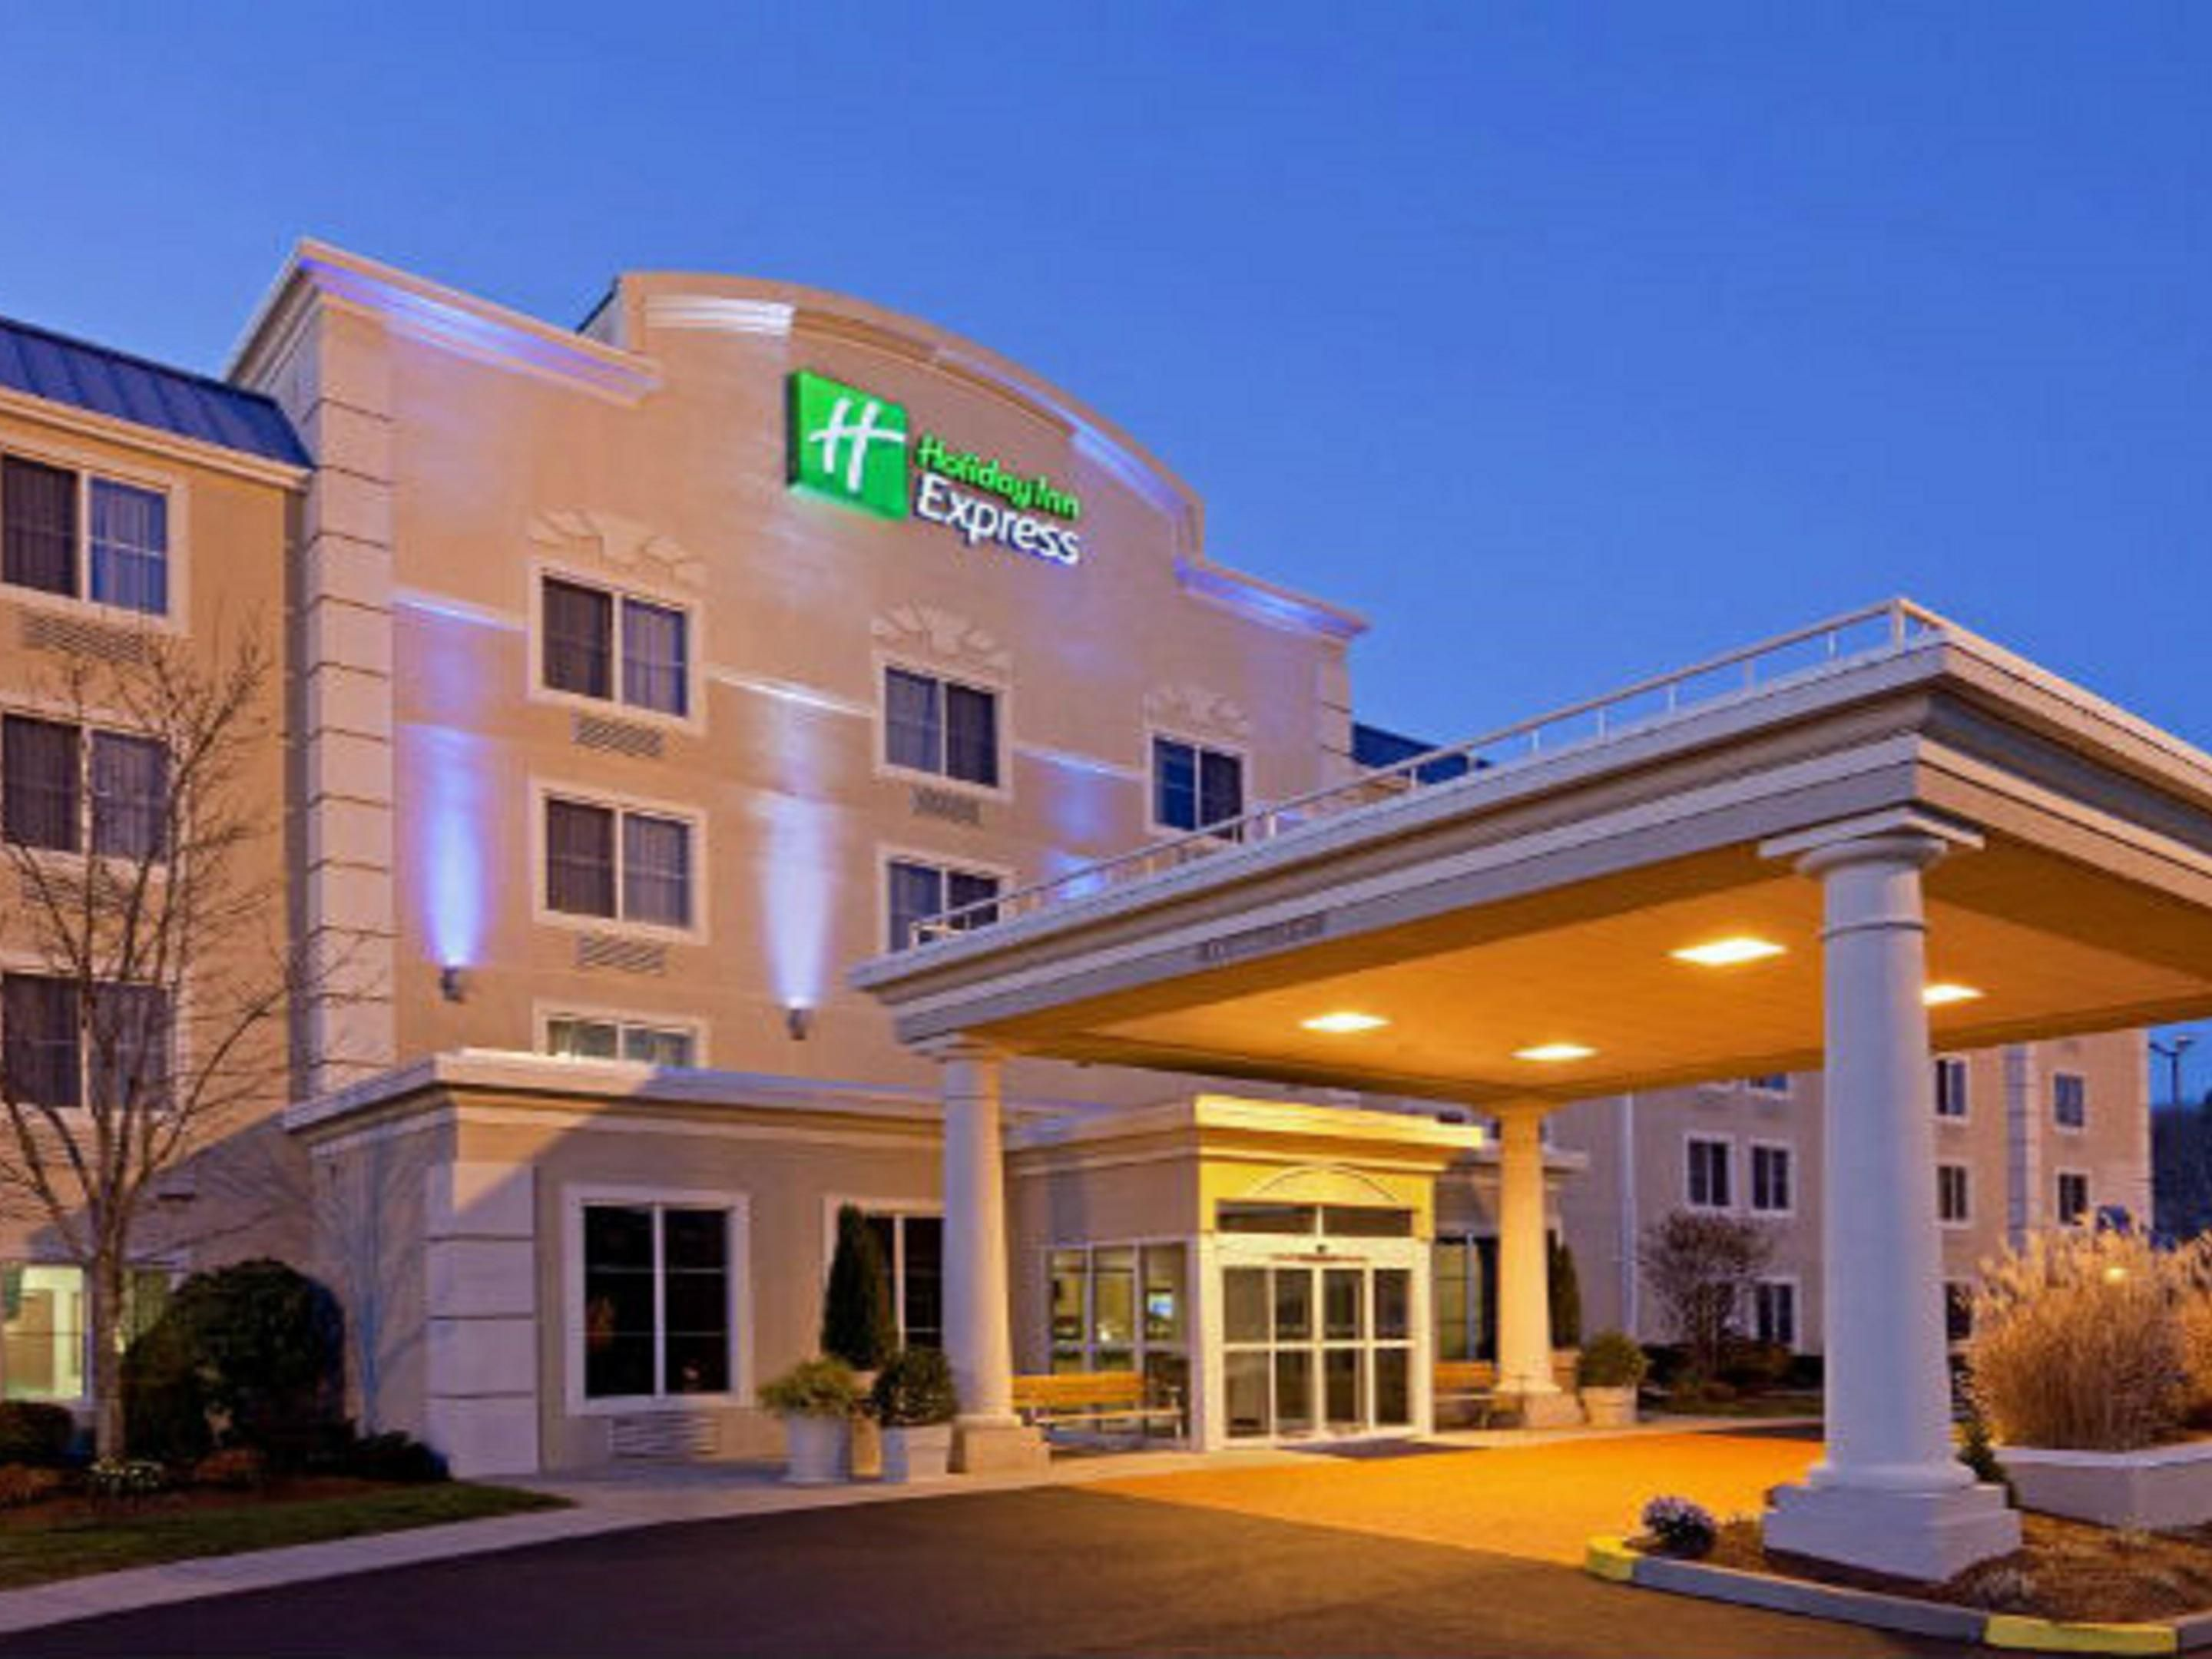 Welcome to the newly renovated Holiday Inn Express hotel!